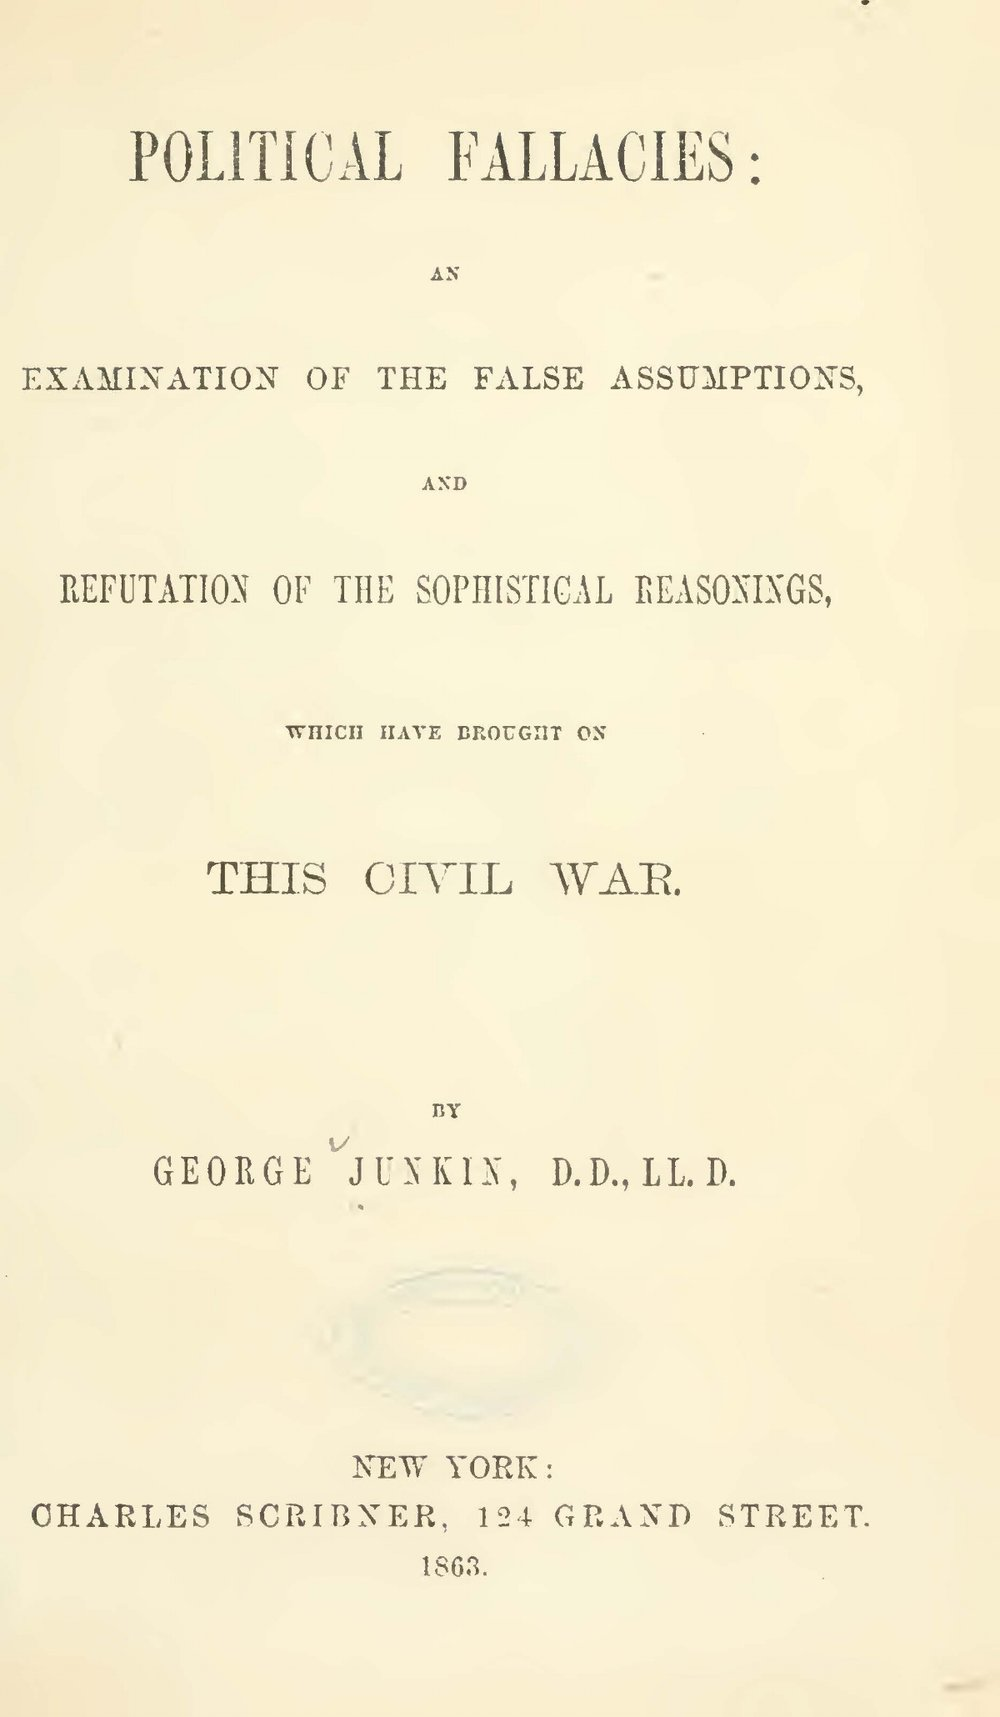 Junkin, George, Political Fallacies Title Page.jpg